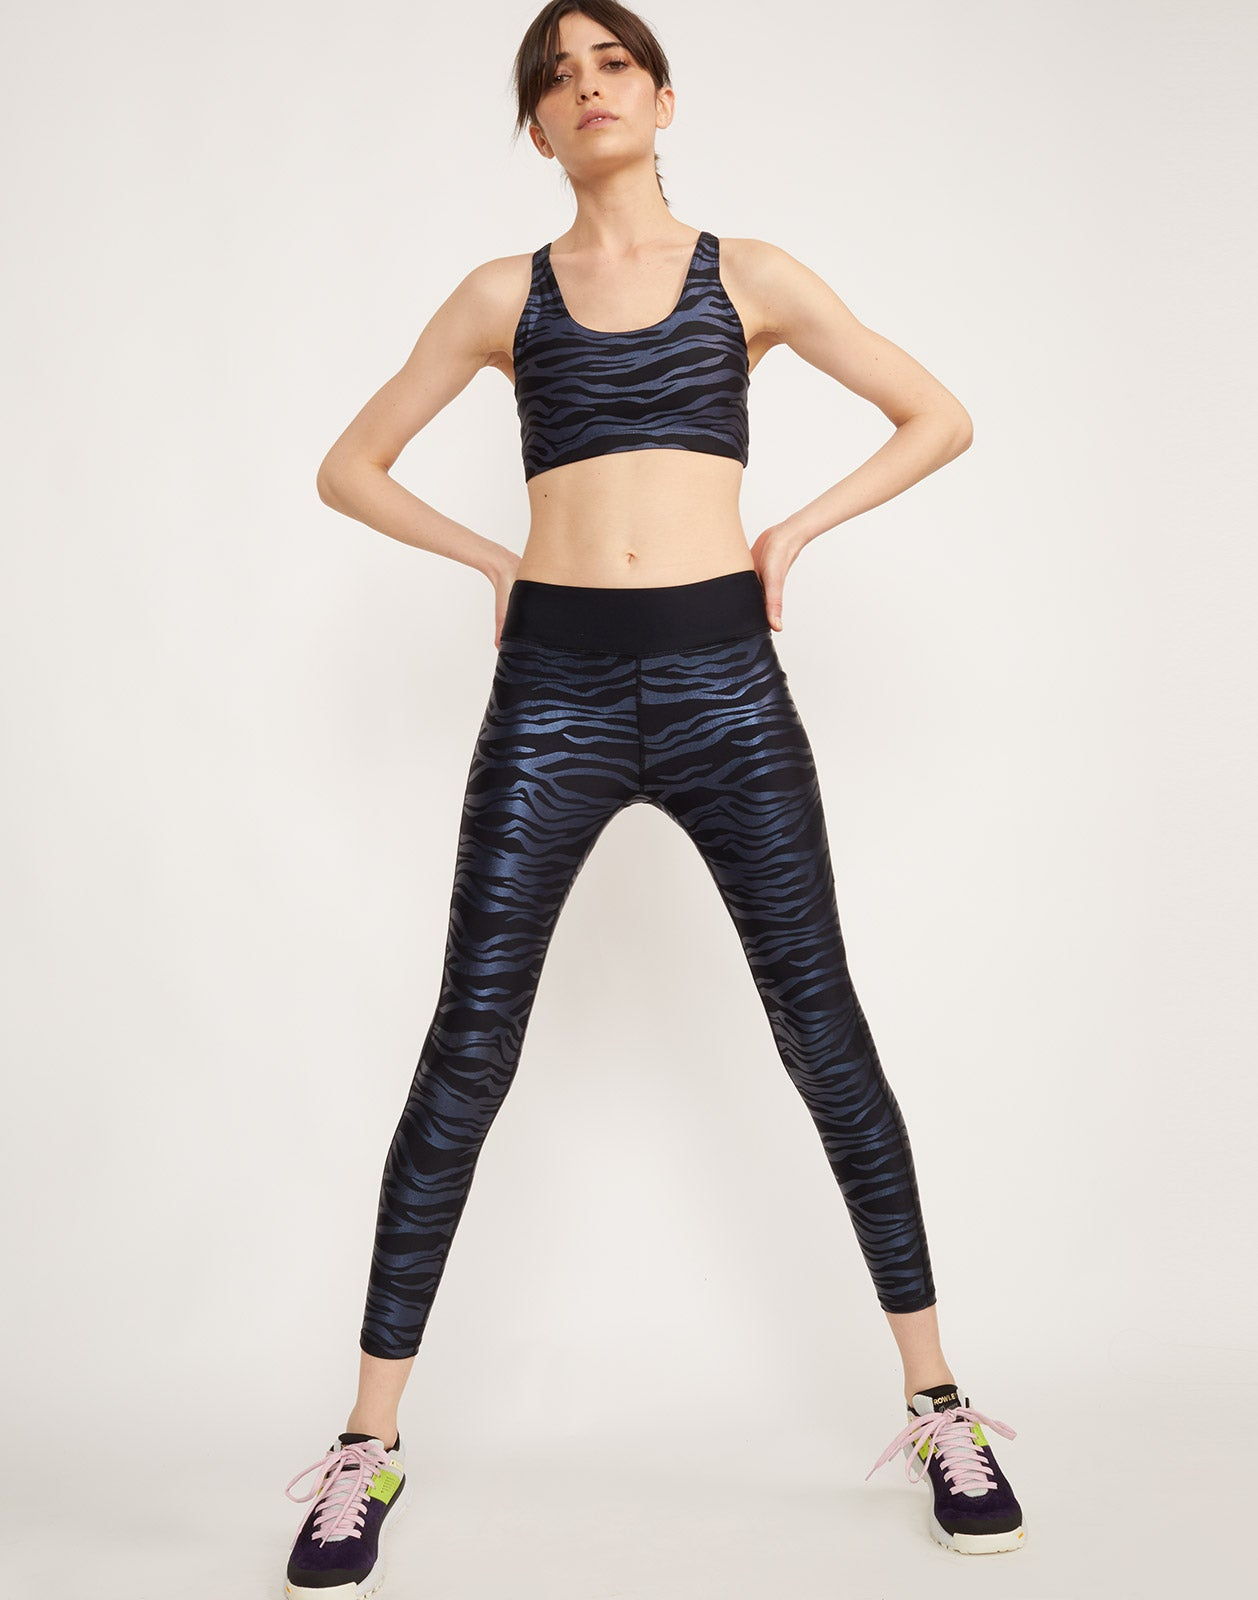 Full view of model wearing Zebra Larkin Sports Bra in navy and black zebra print with Zebra Lincoln legging.